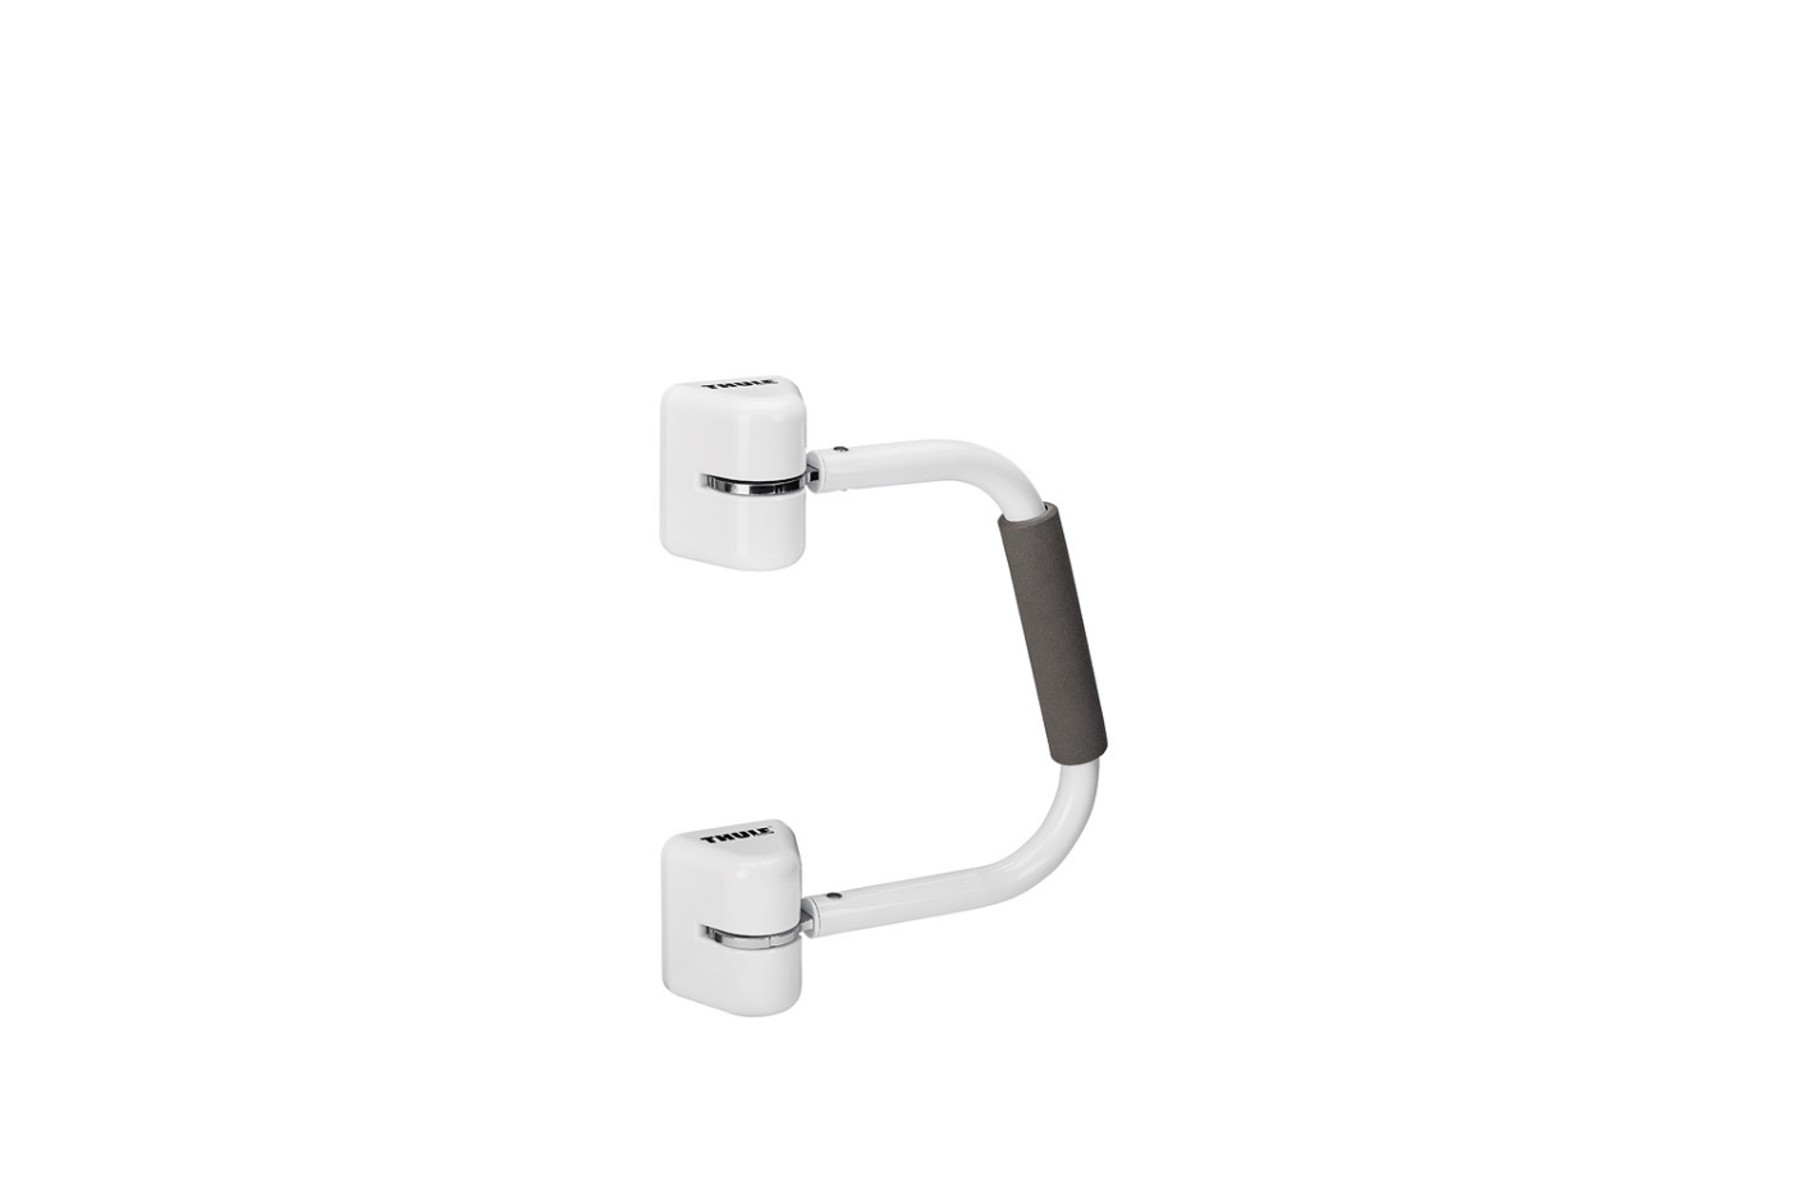 Thule Security Handrail SV Closed Studio 307387